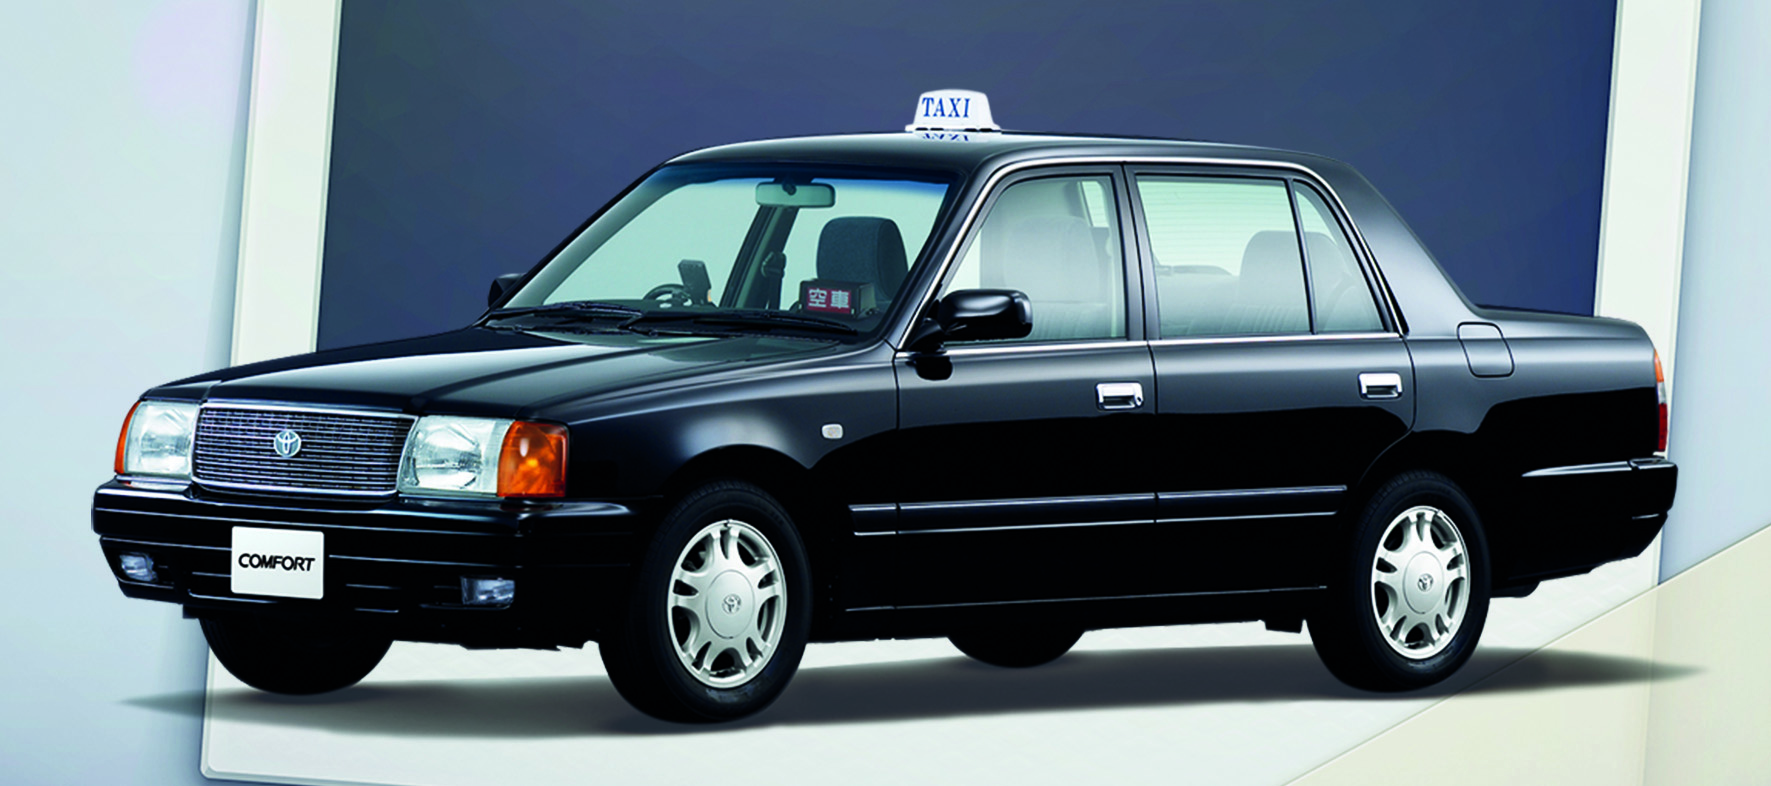 Singapore S Clic Toyota Cabs Have Reached The End Of Road After 32 Years